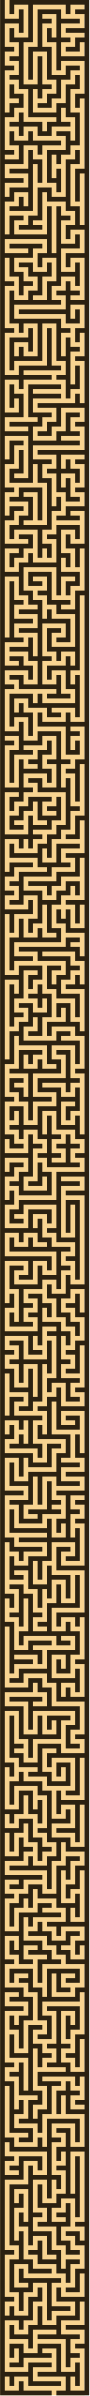 The Block Version of the Thin Maze by AdamStanislav